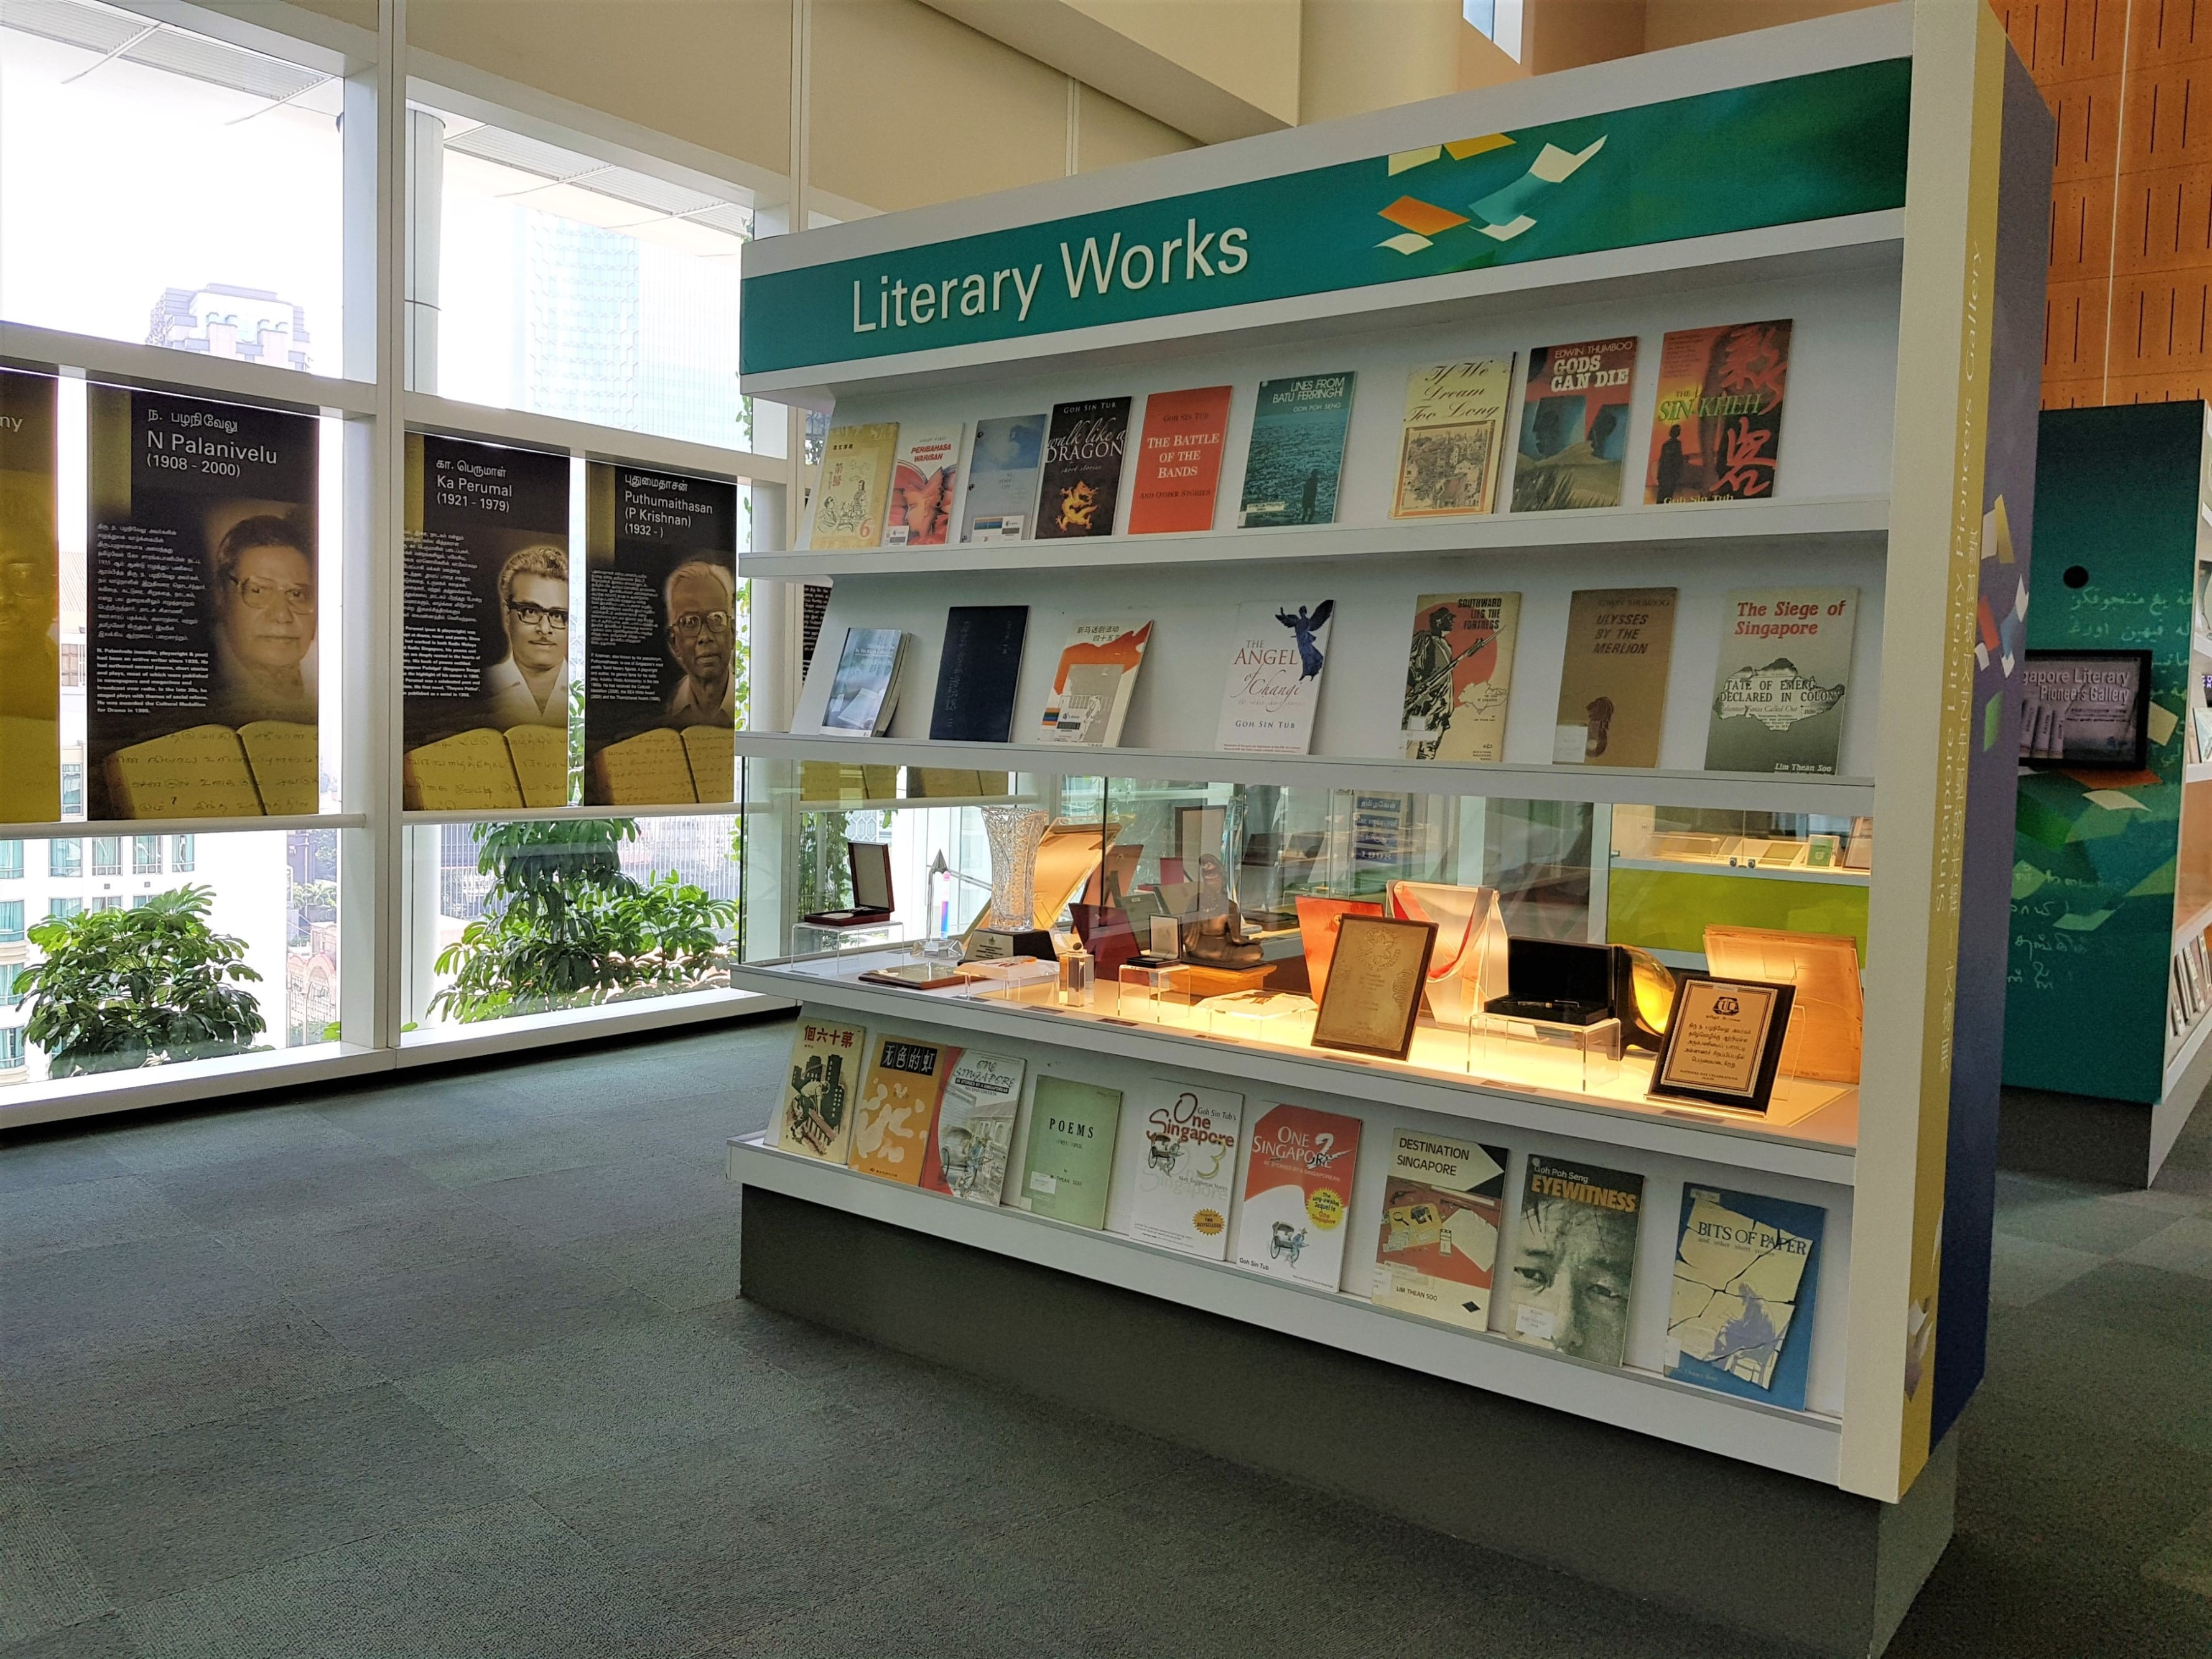 A wall title Literary Works. On the upper half, rows of illustrated book covers decorate the shelves. On the bottom half, there is a showcase featuring items of interest from the authors, such as trophies.